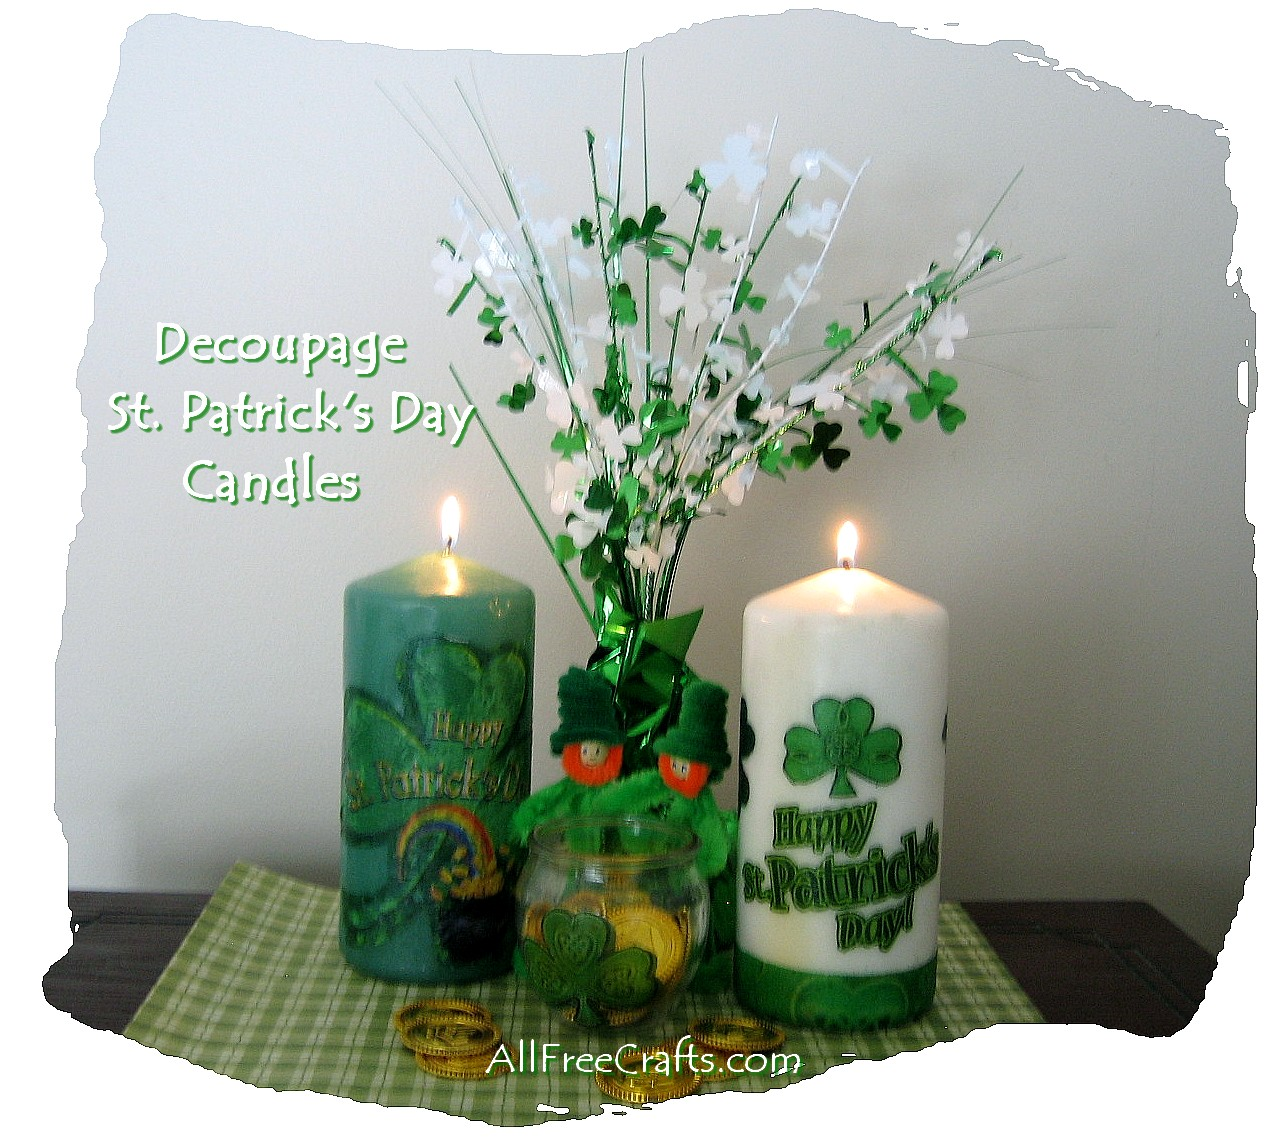 St. Patrick's candles with paper napkin decoupage